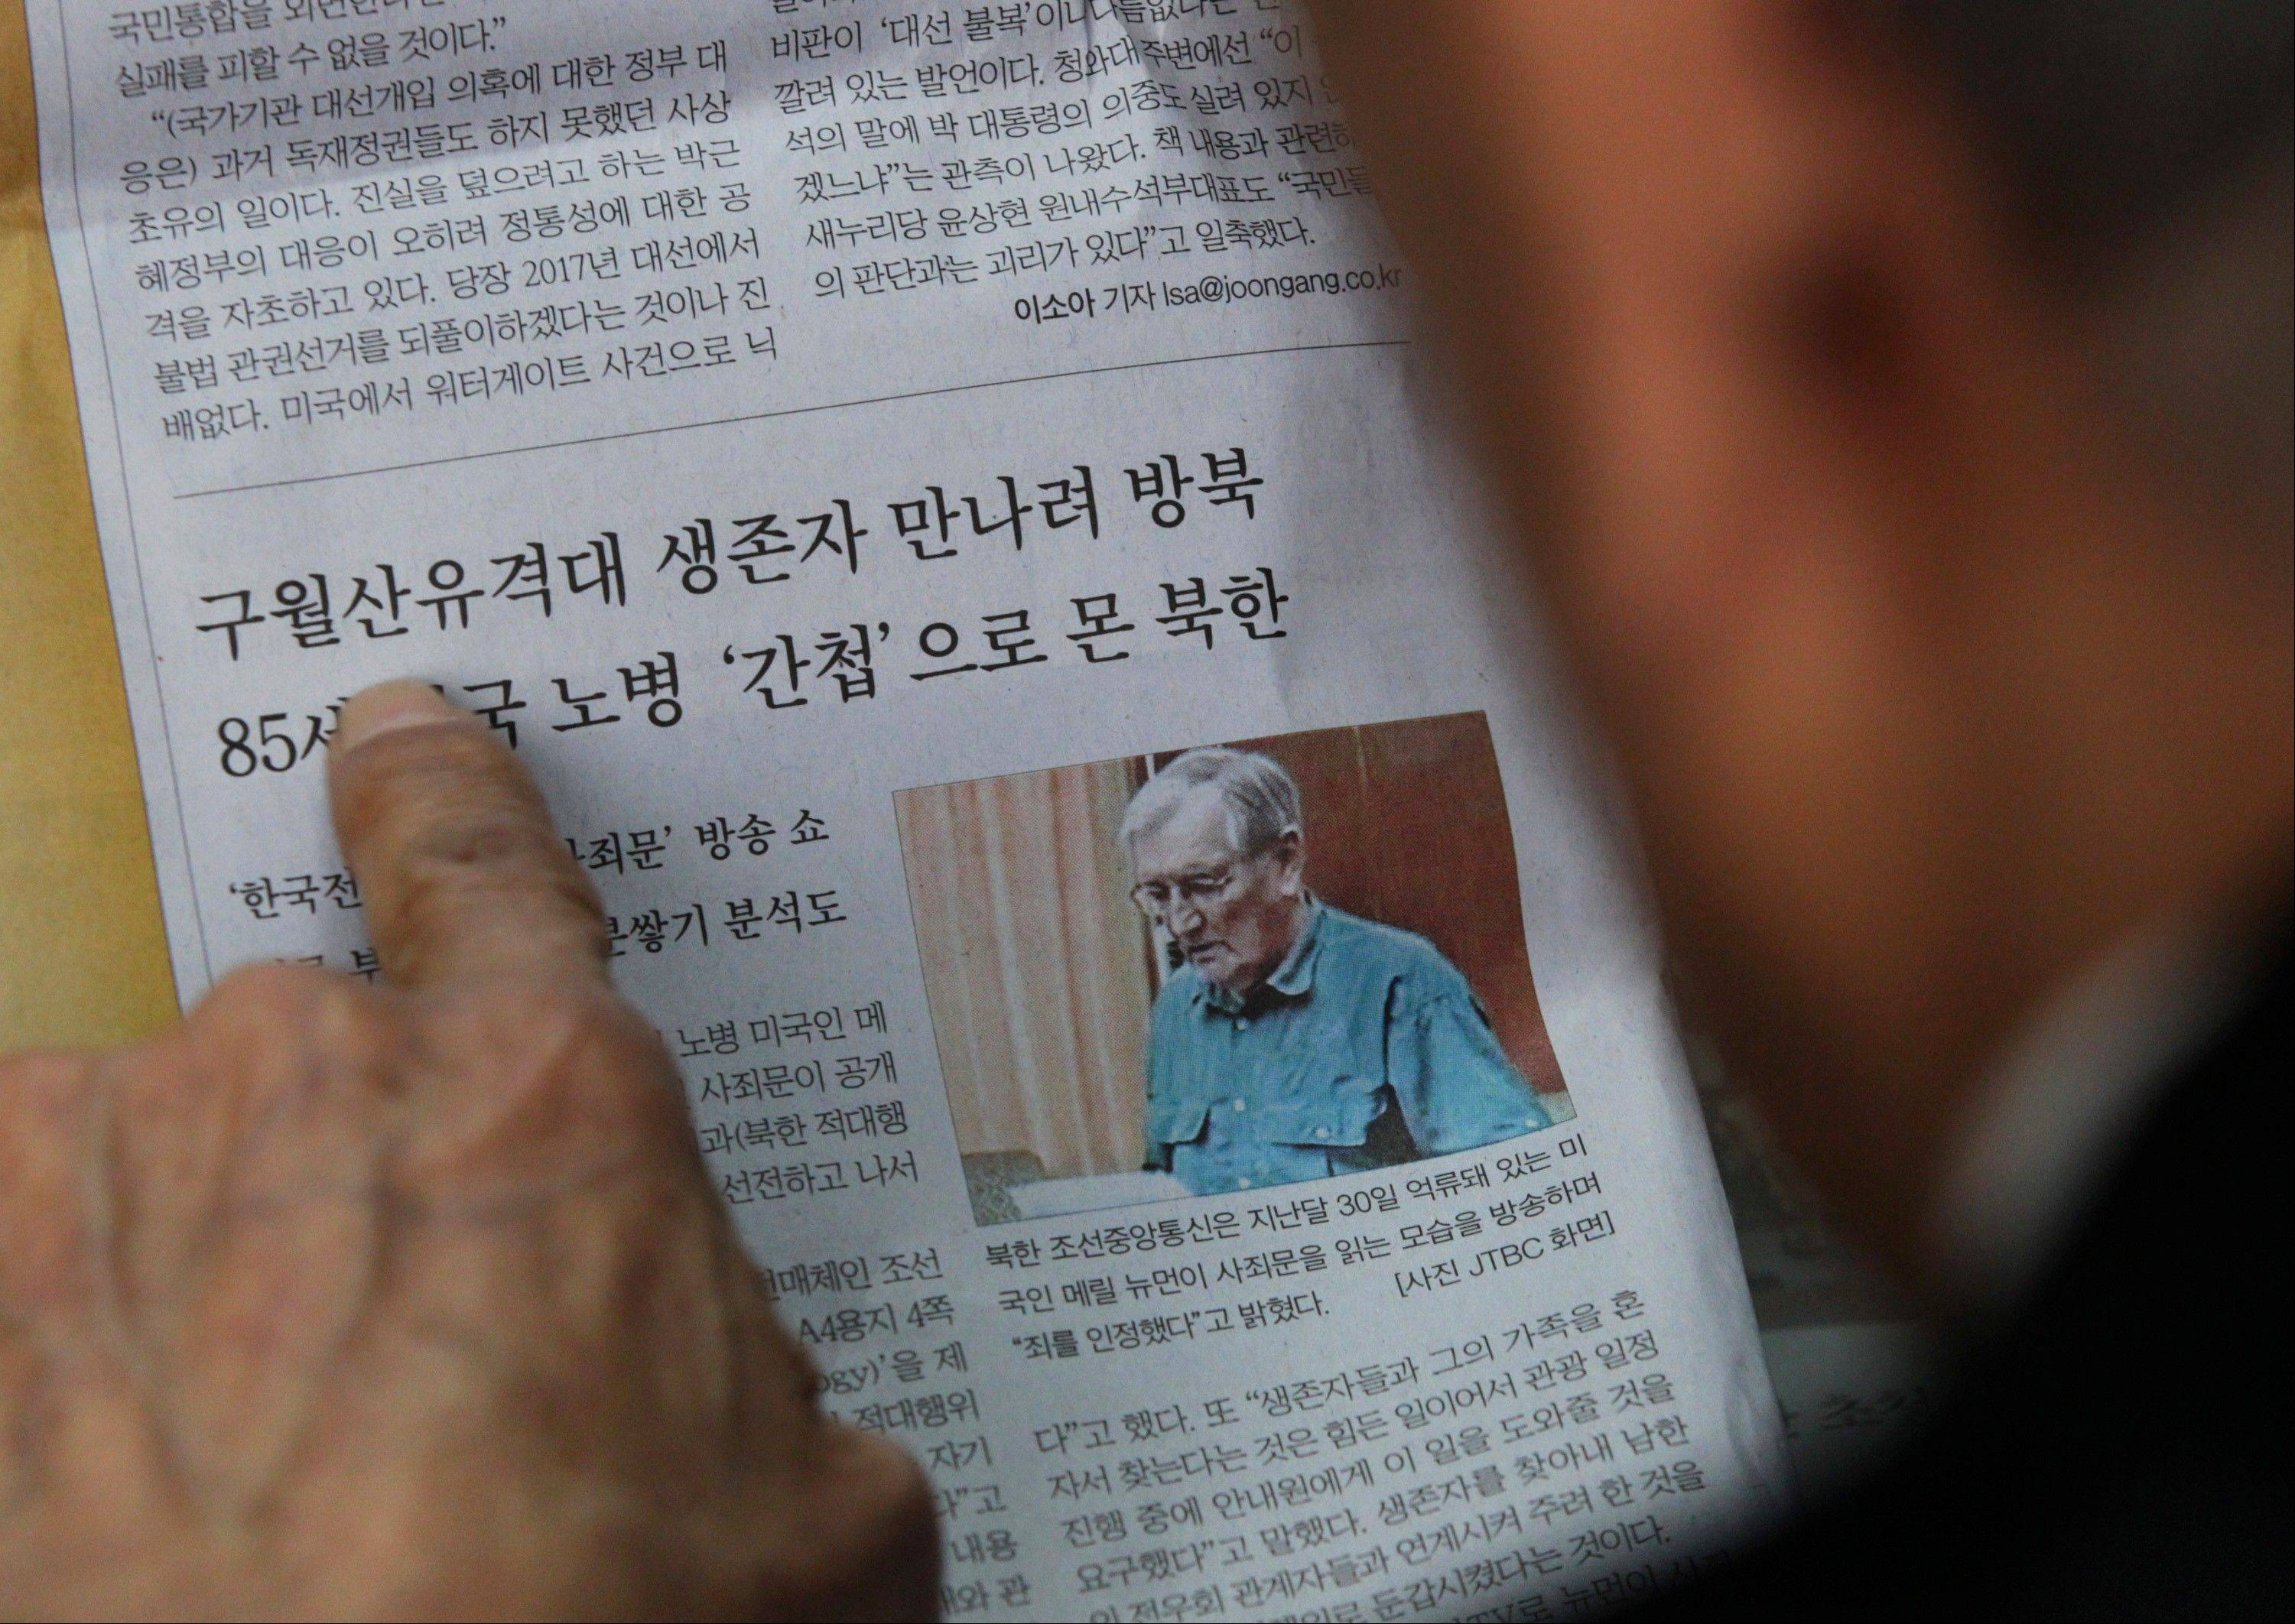 A former member of the Kuwol partisan unit, reads a newspaper reporting on Merrill Newman, an elderly American tourist detained in North Korea, at the Kuwol partisan unit association office in Seoul, South Korea.